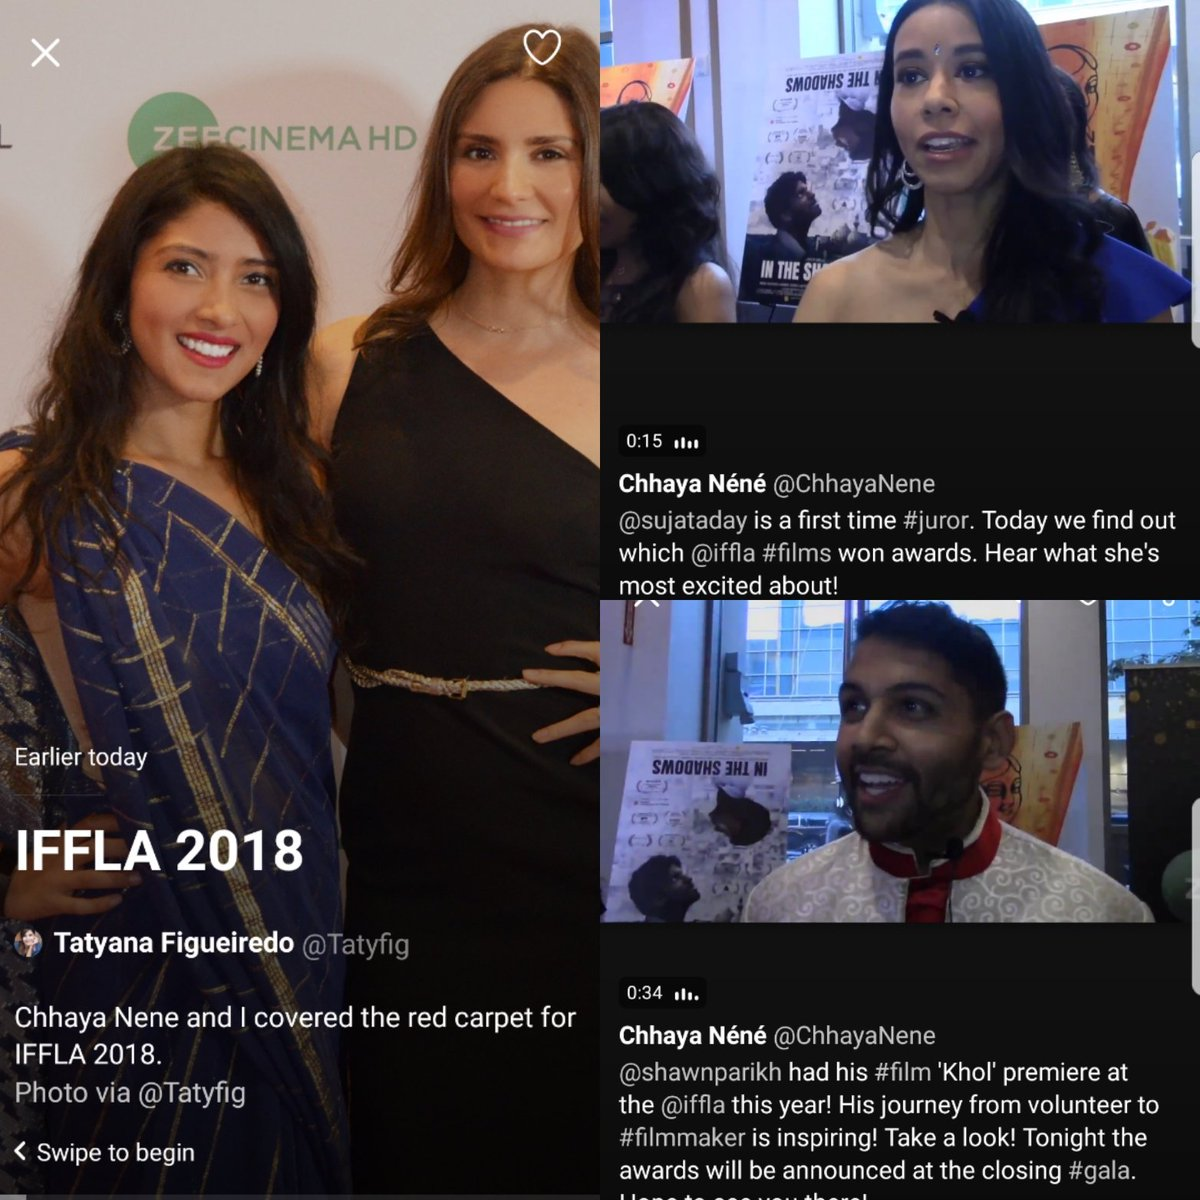 Holy cow. .@Tatyfig &amp; I made .@Twitter moments today for coverage of .@iffla #iffla2018 @BGBStudio #actresses not waiting for stuff to come to them. We went &amp; got it. @CarolineLiem #twittermoments #journo<br>http://pic.twitter.com/DH8vJutkr4